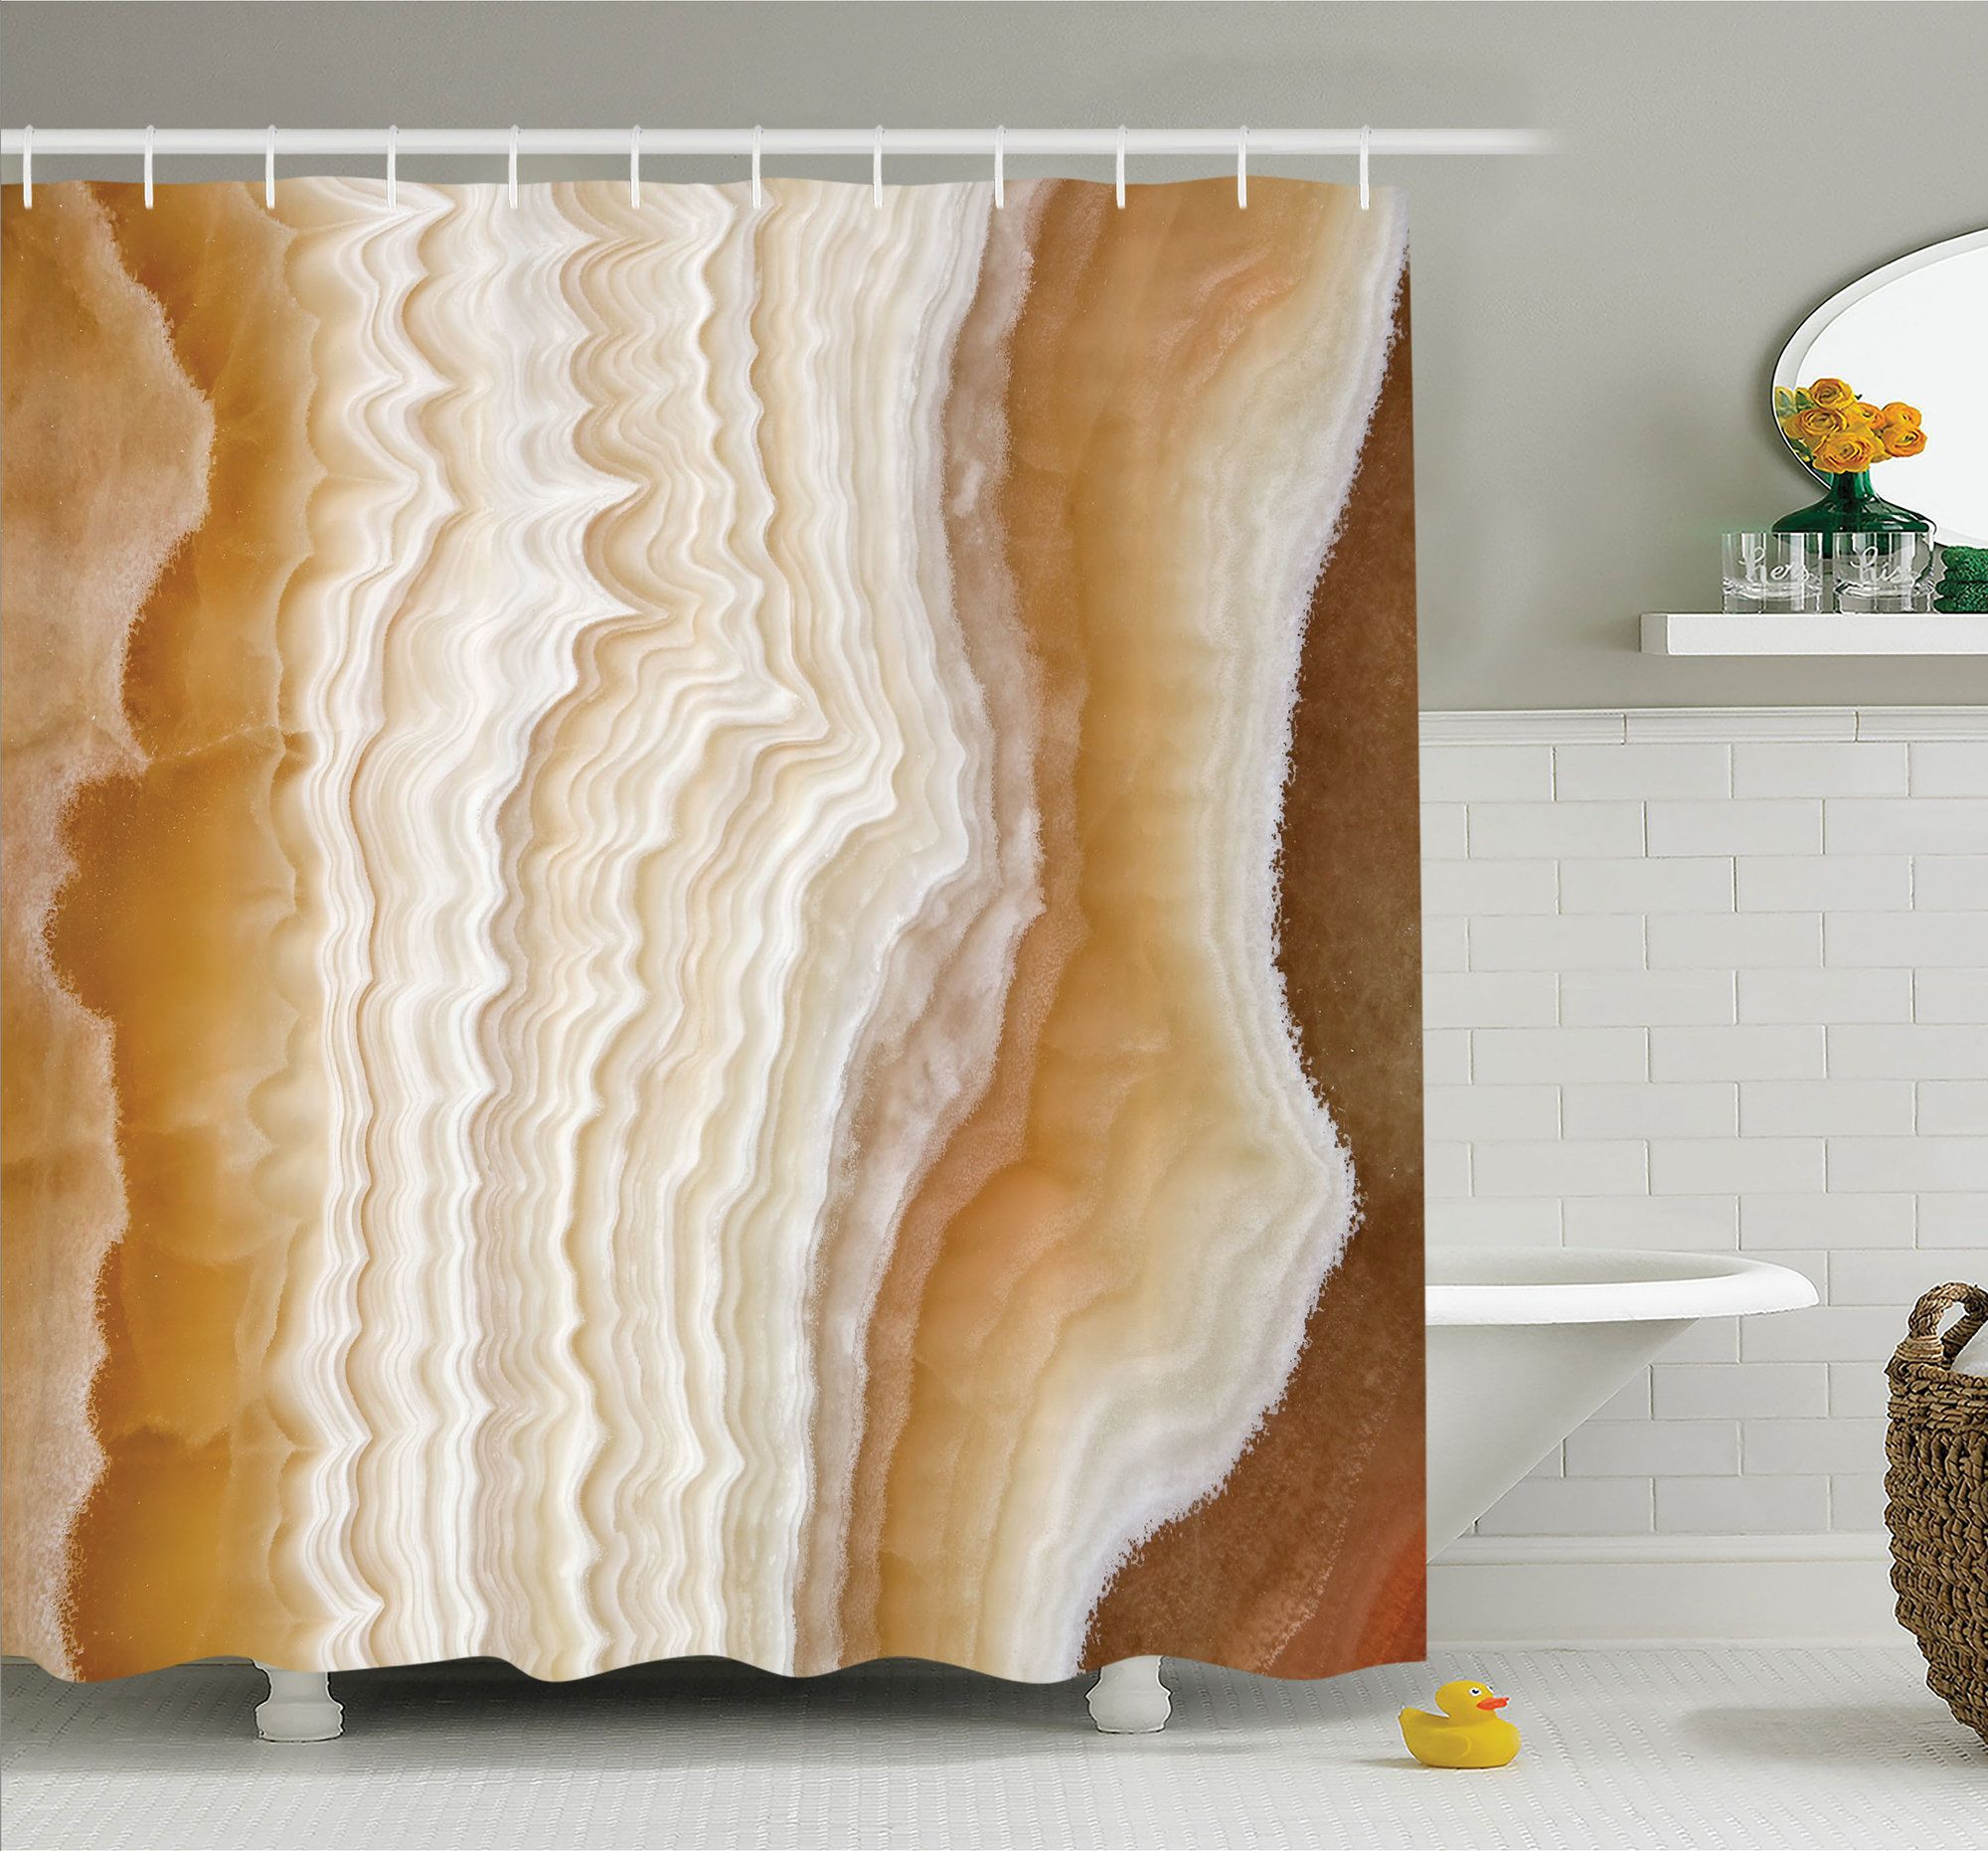 Apartment Odd Wavy Marble Pattern With New Lines And Shapes Digital Nature Computer Art Shower Curtain Set